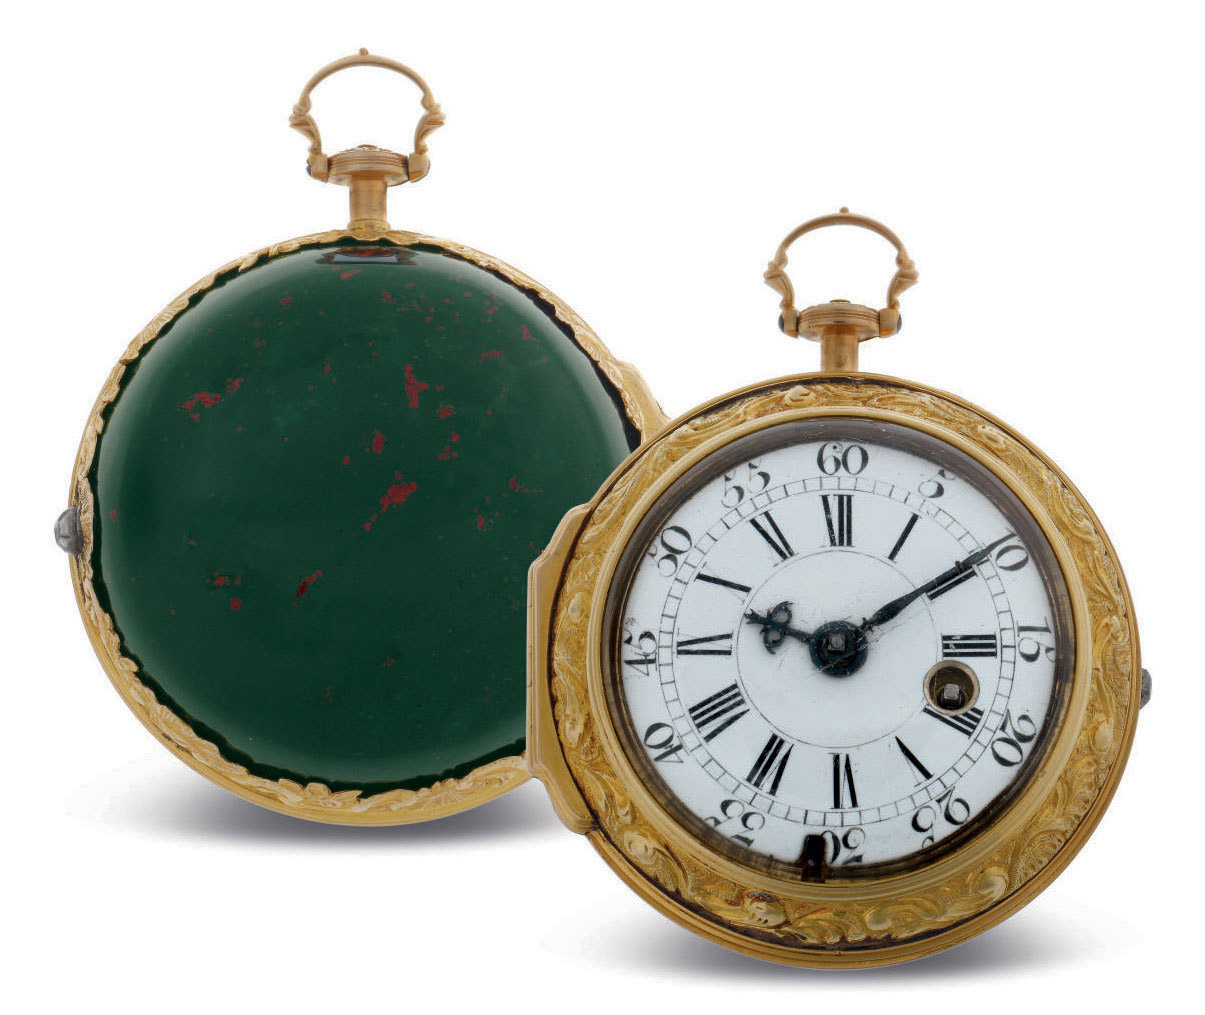 L. BIGGS. A GOLD CONSULAR-CASED VERGE WATCH WITH BLOODSTONE BOWL